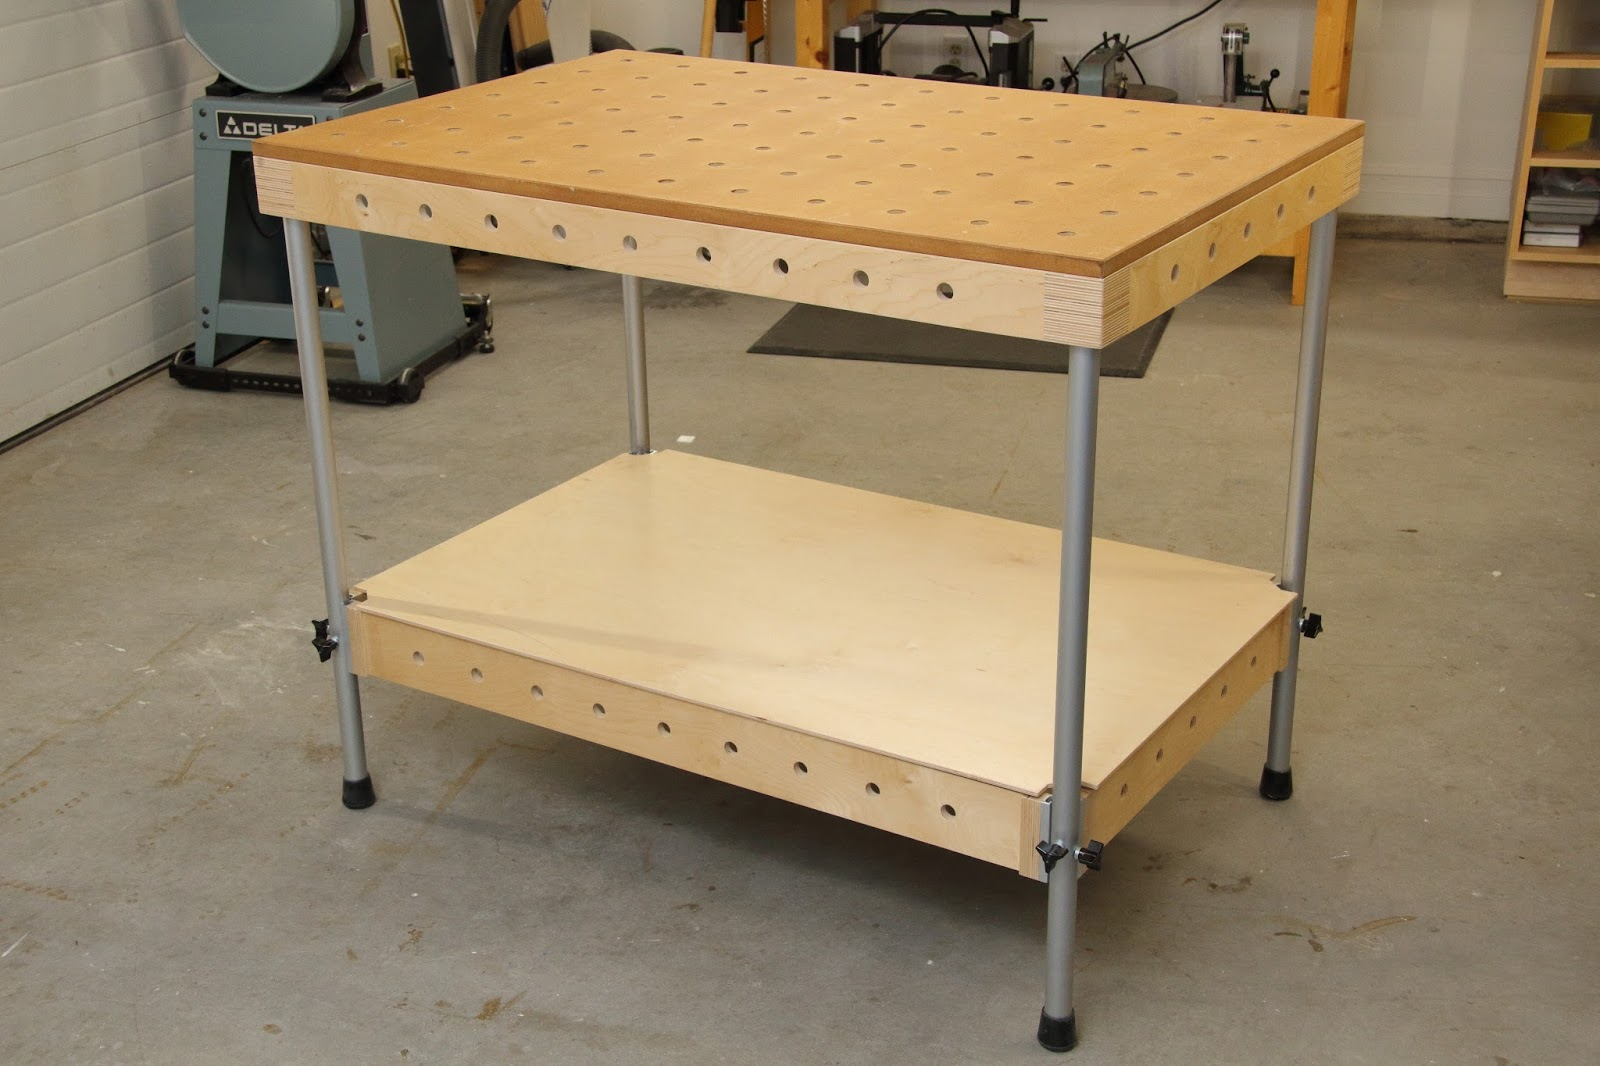 Multi Purpose Table the multi purpose table (mpt): what is the multi purpose table?